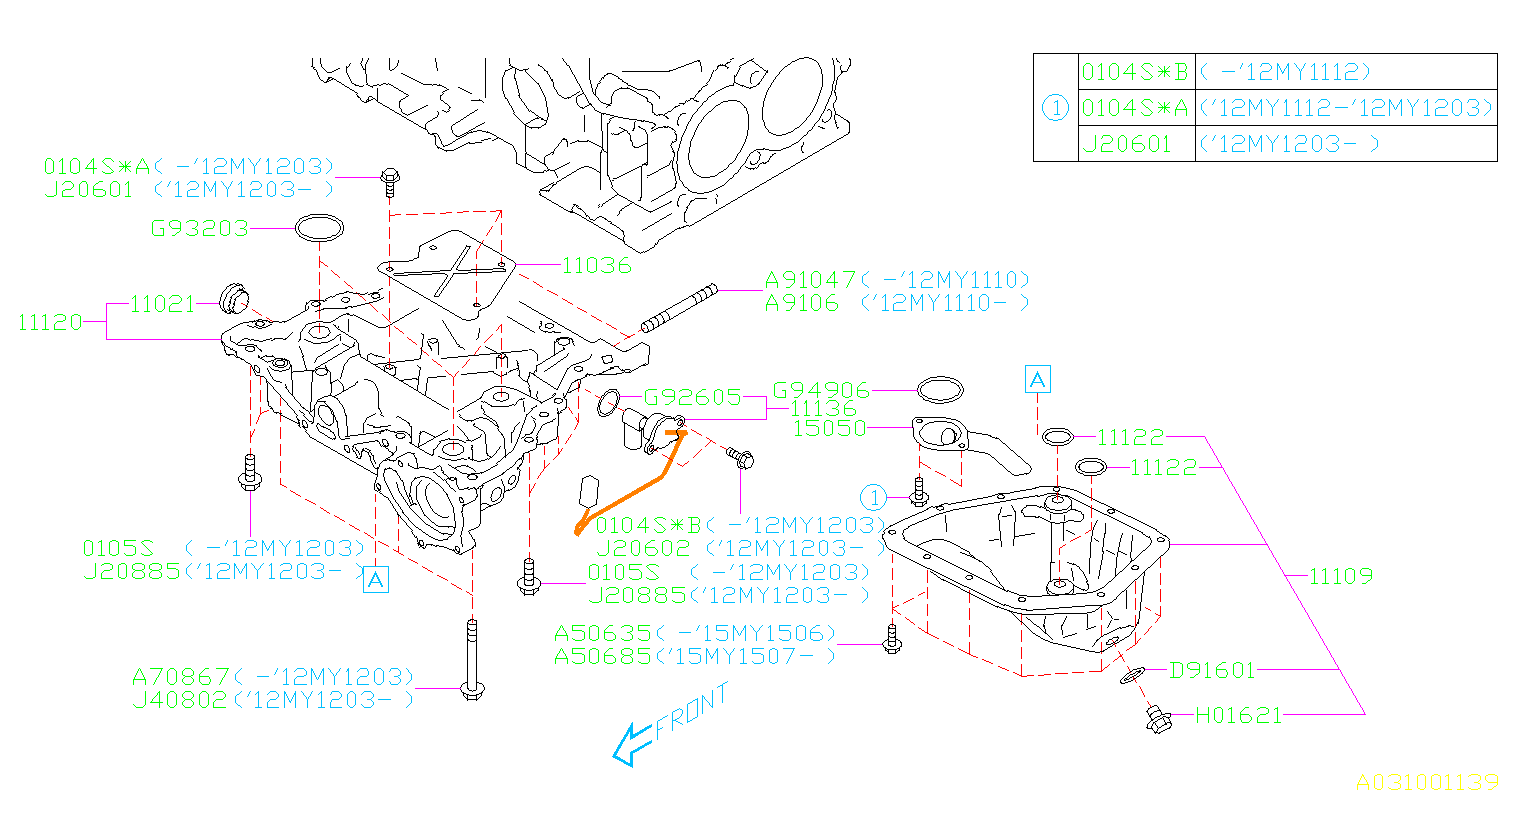 medium resolution of subaru 2 2 engine oil diagram wiring library rh 17 skriptoase de 2004 subaru outback engine diagram 2004 subaru outback engine diagram